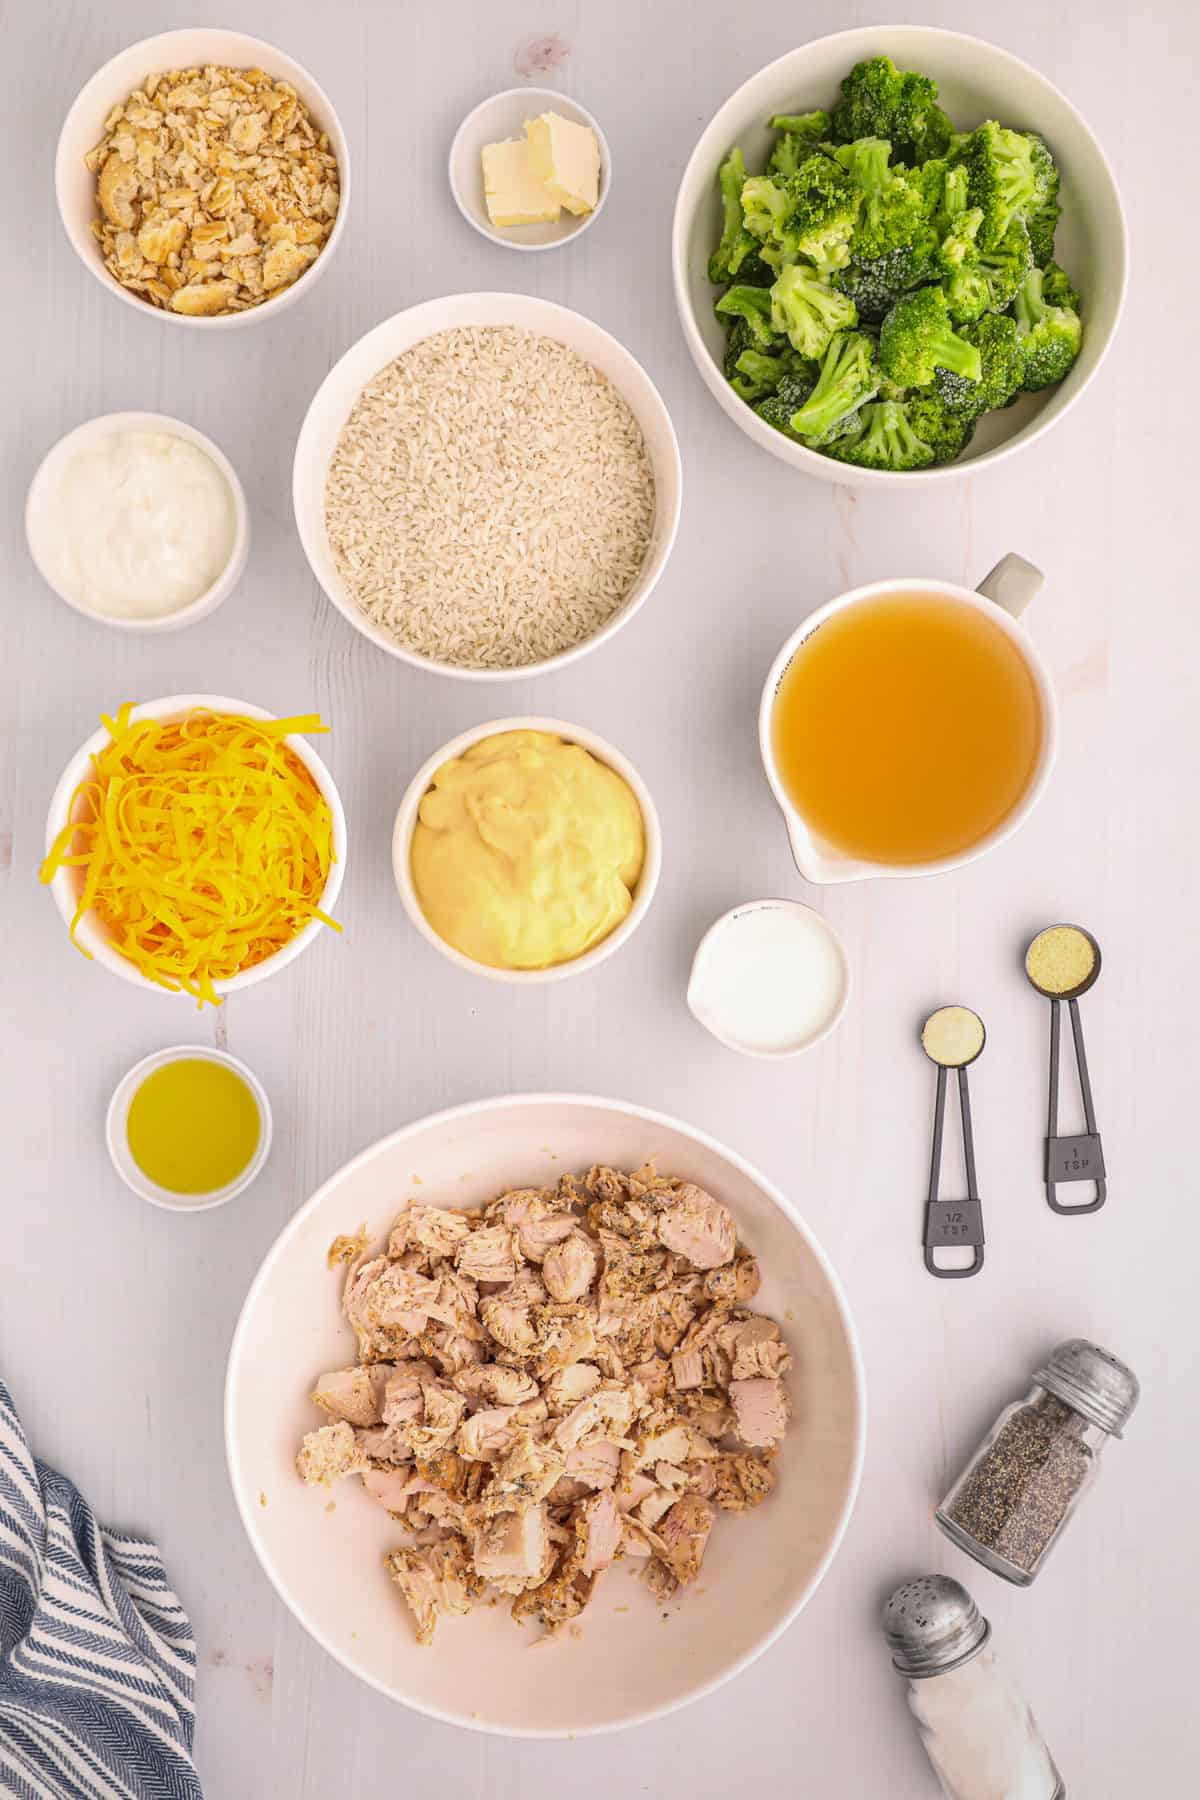 ingredients to make chicken and rice casserole